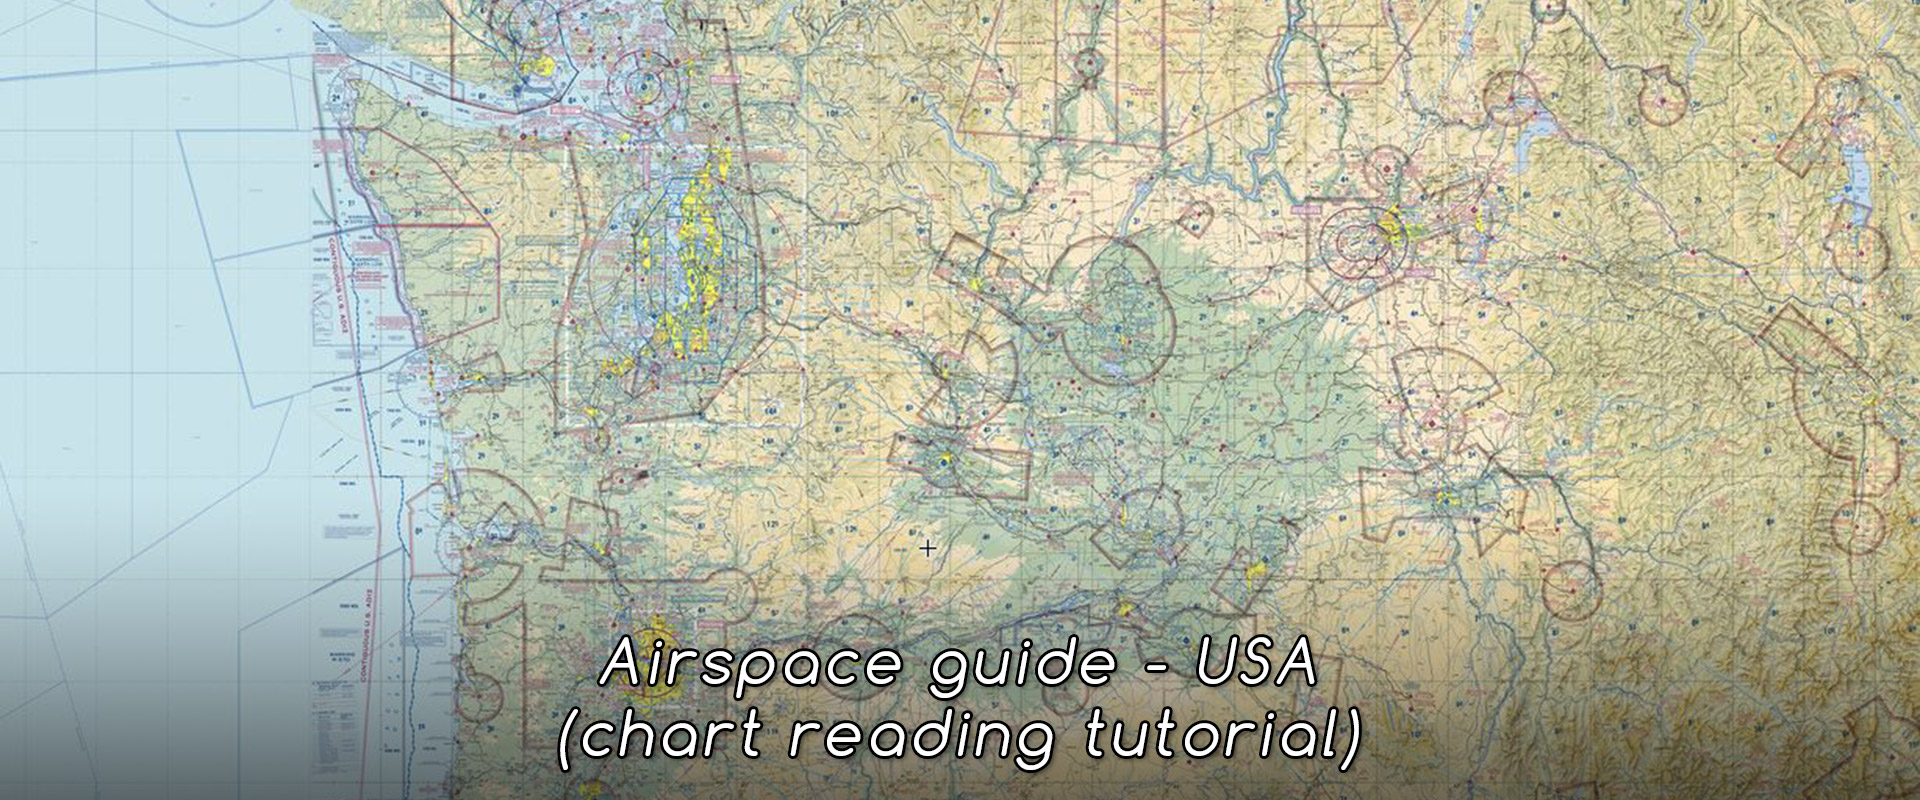 Airspace guide - USA (chart reading tutorial)